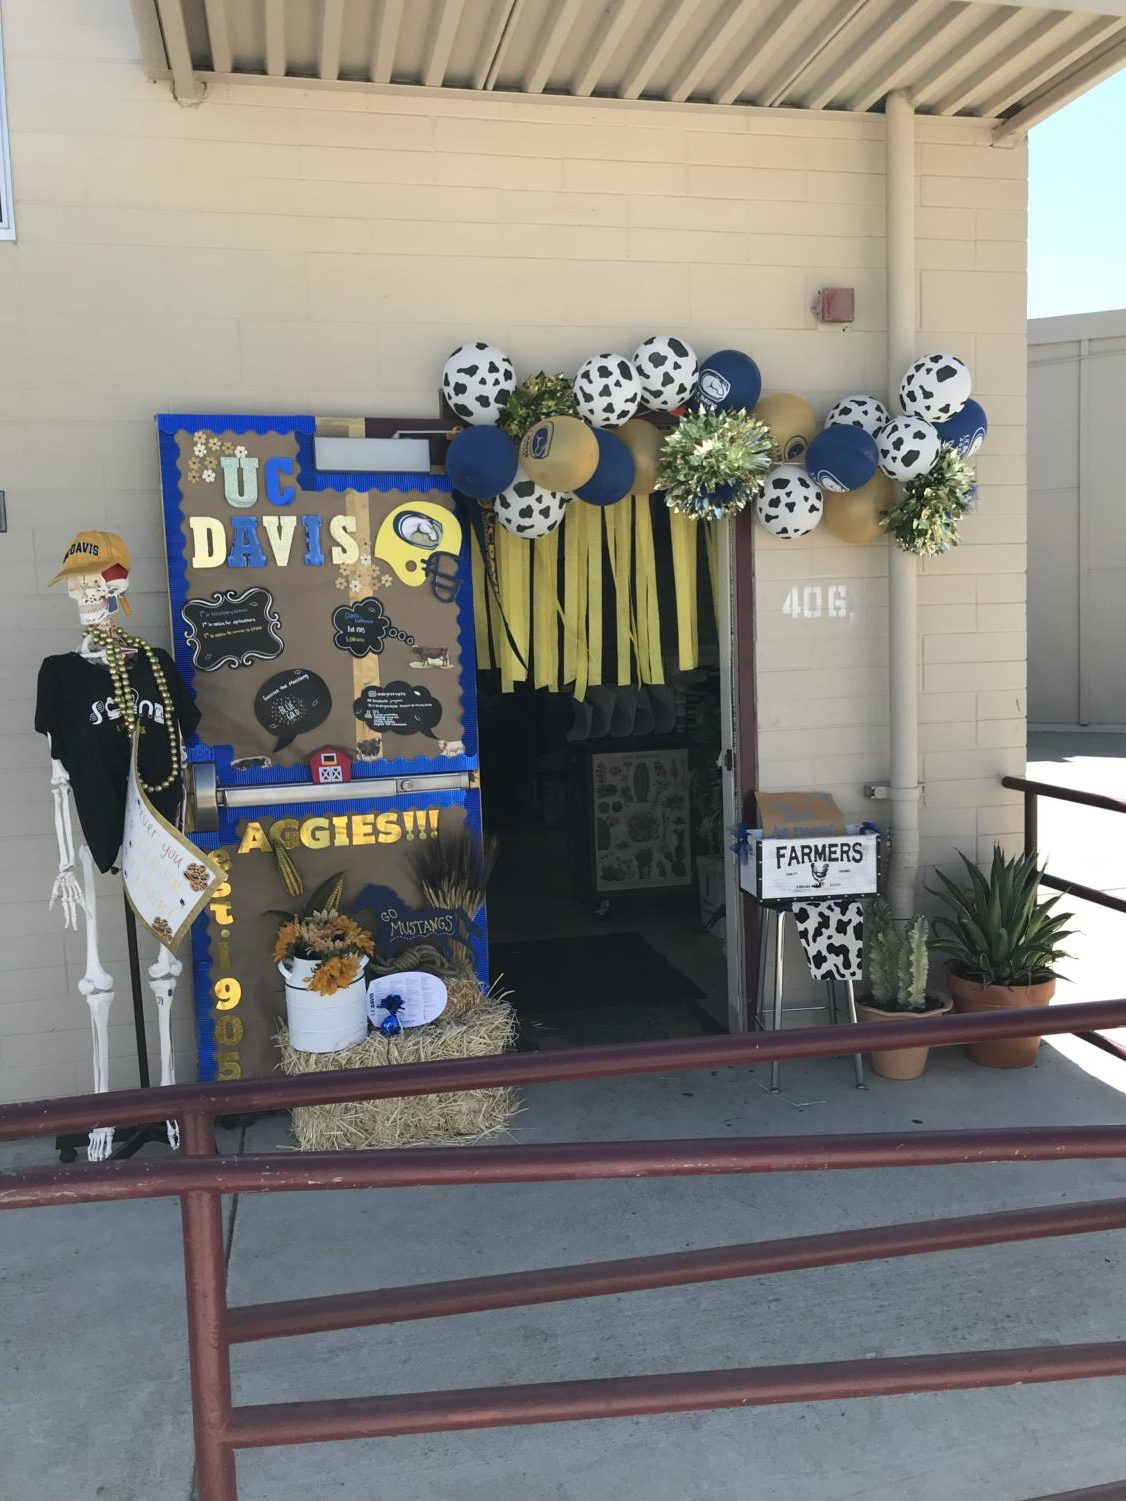 Mrs. Fajardo's fourth period won the door decorating contest with a beautiful display representing UC Davis.